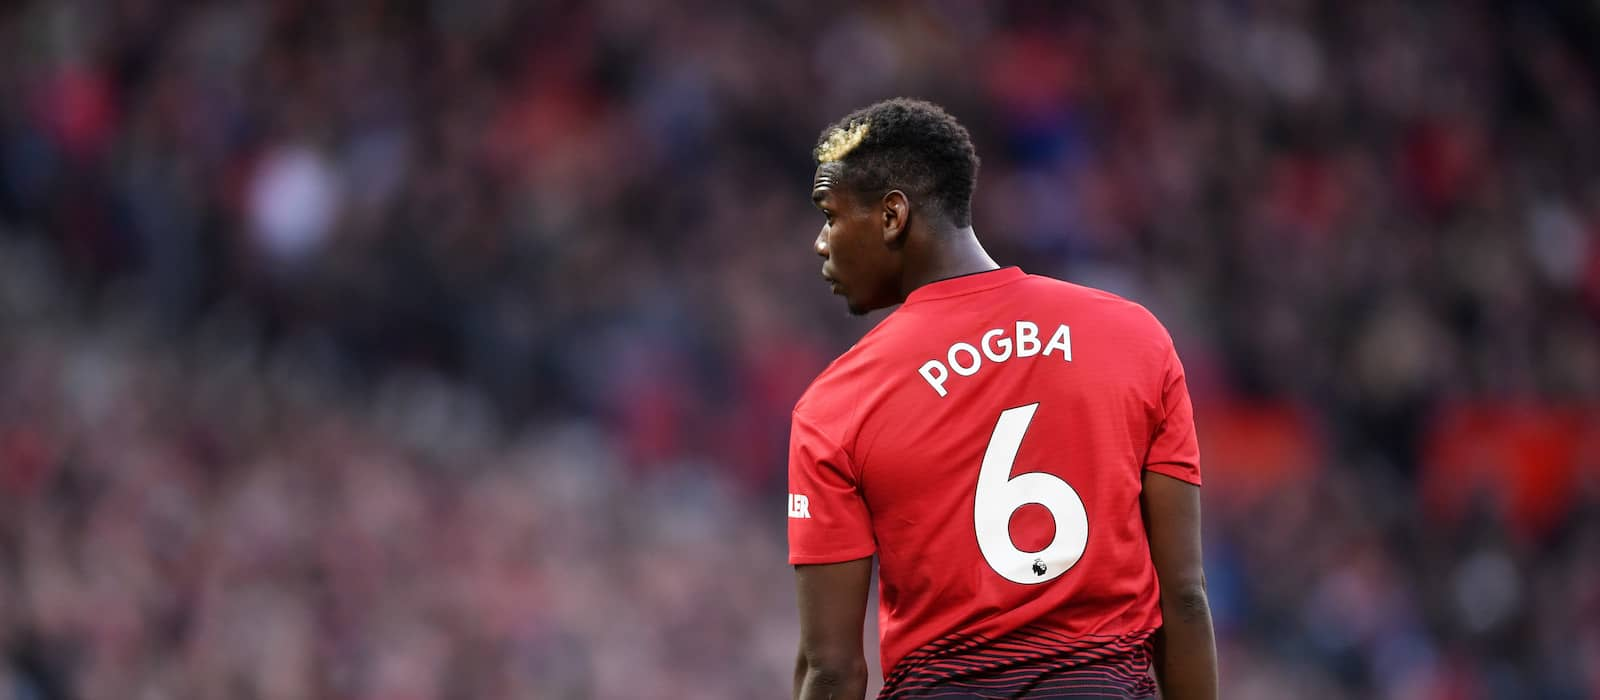 Paul Pogba produces talismanic second half performance against Newcastle United